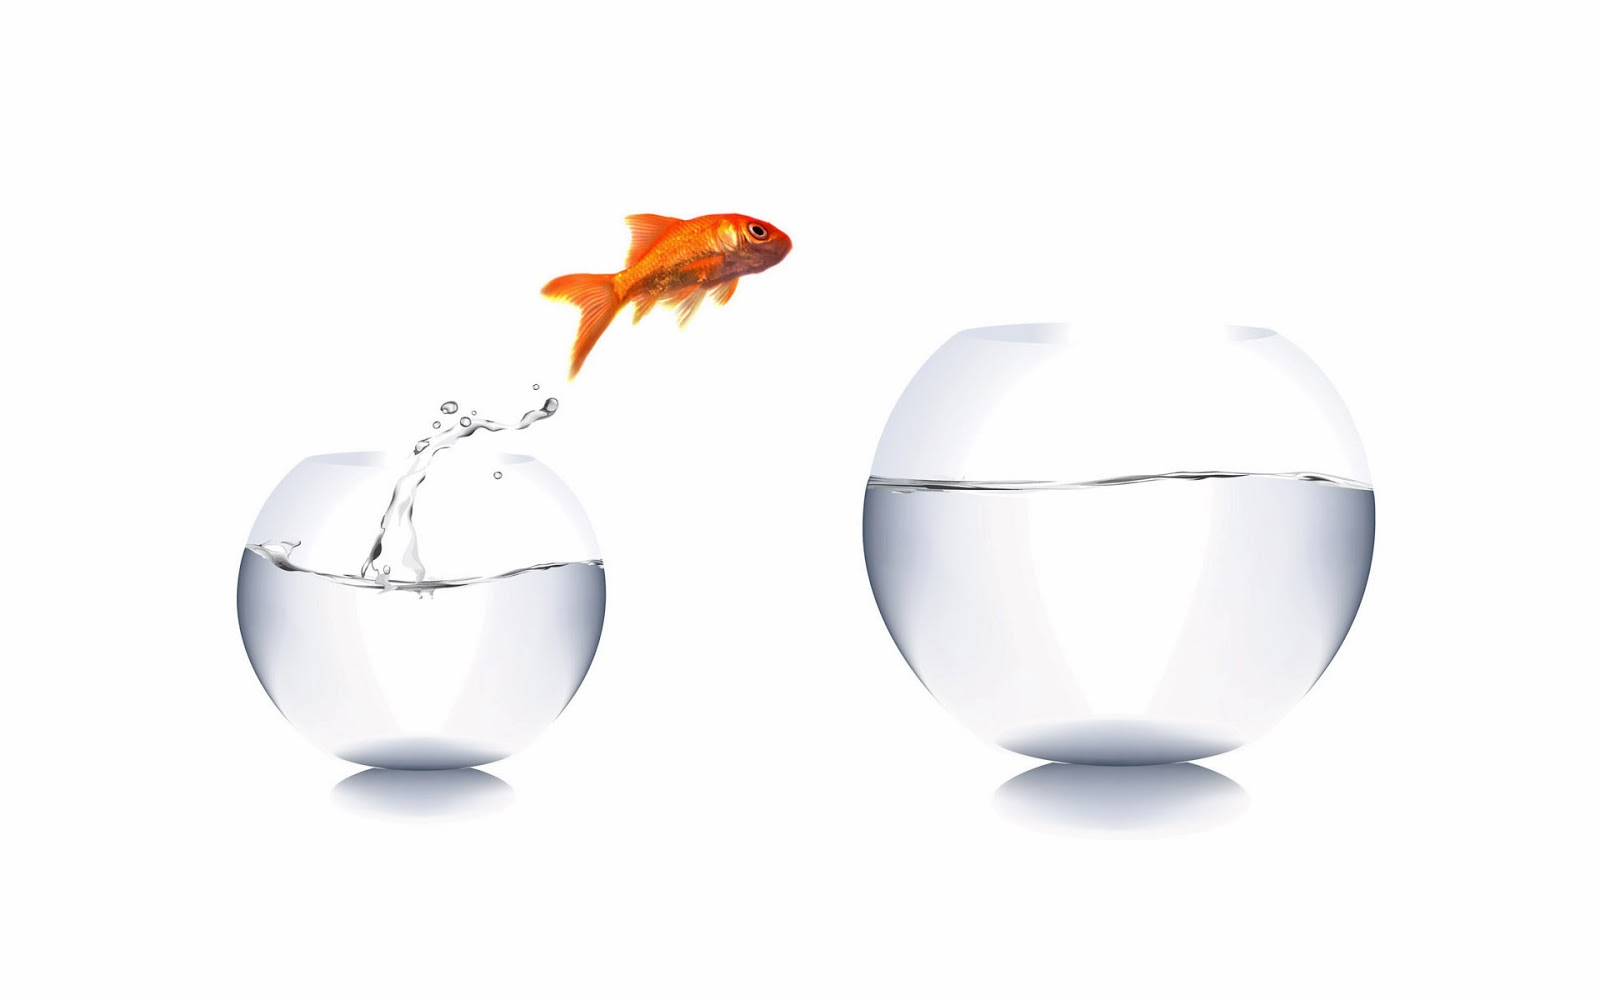 All About Insurance Jumping Goldfish Wallpapers